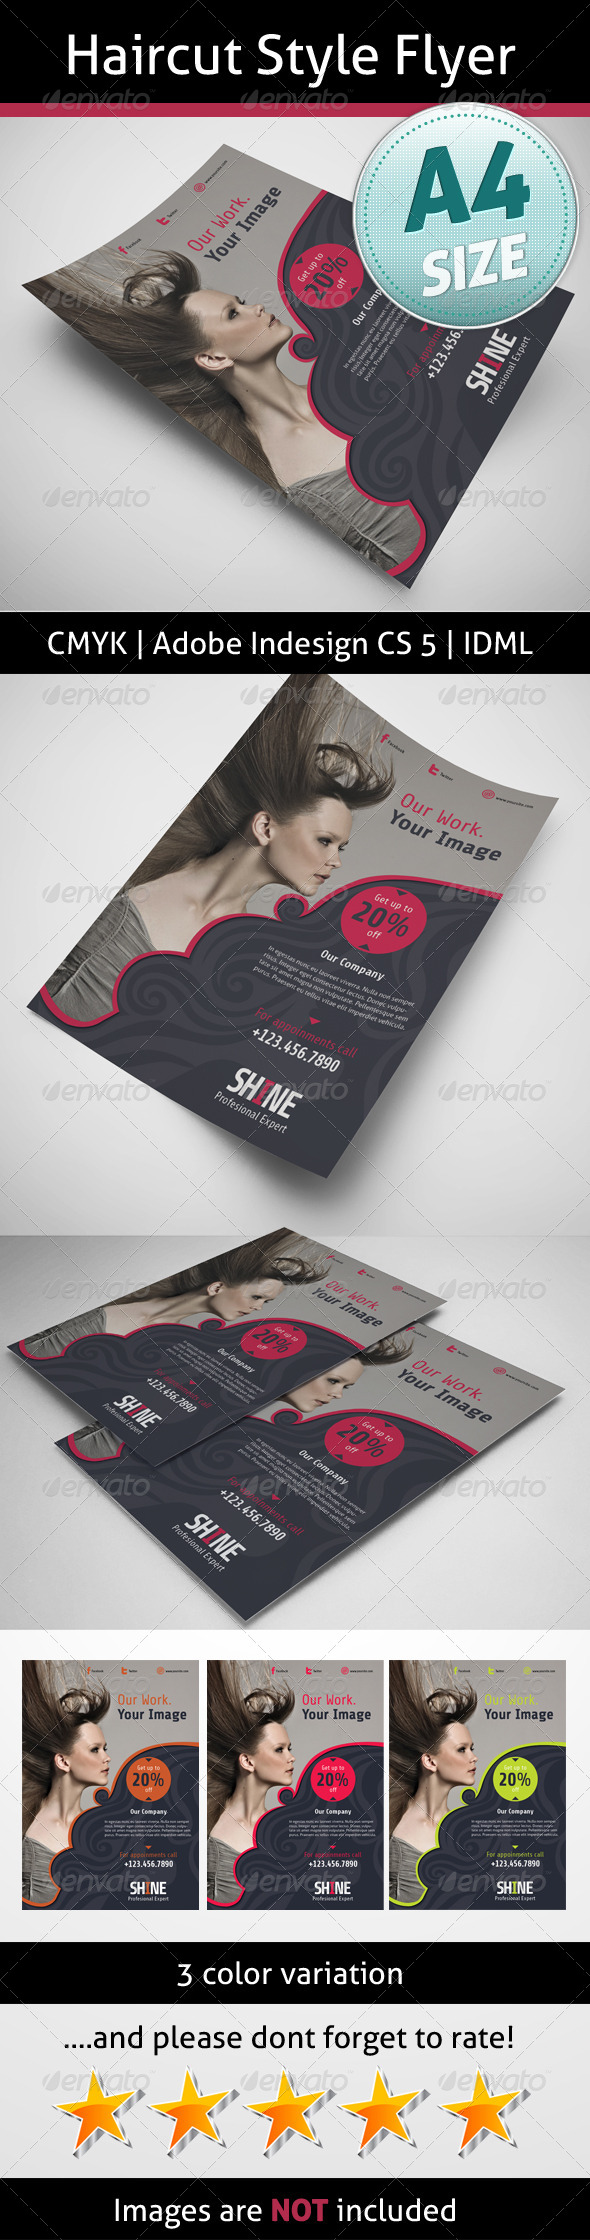 GraphicRiver Haircut Style Flyer 5165359